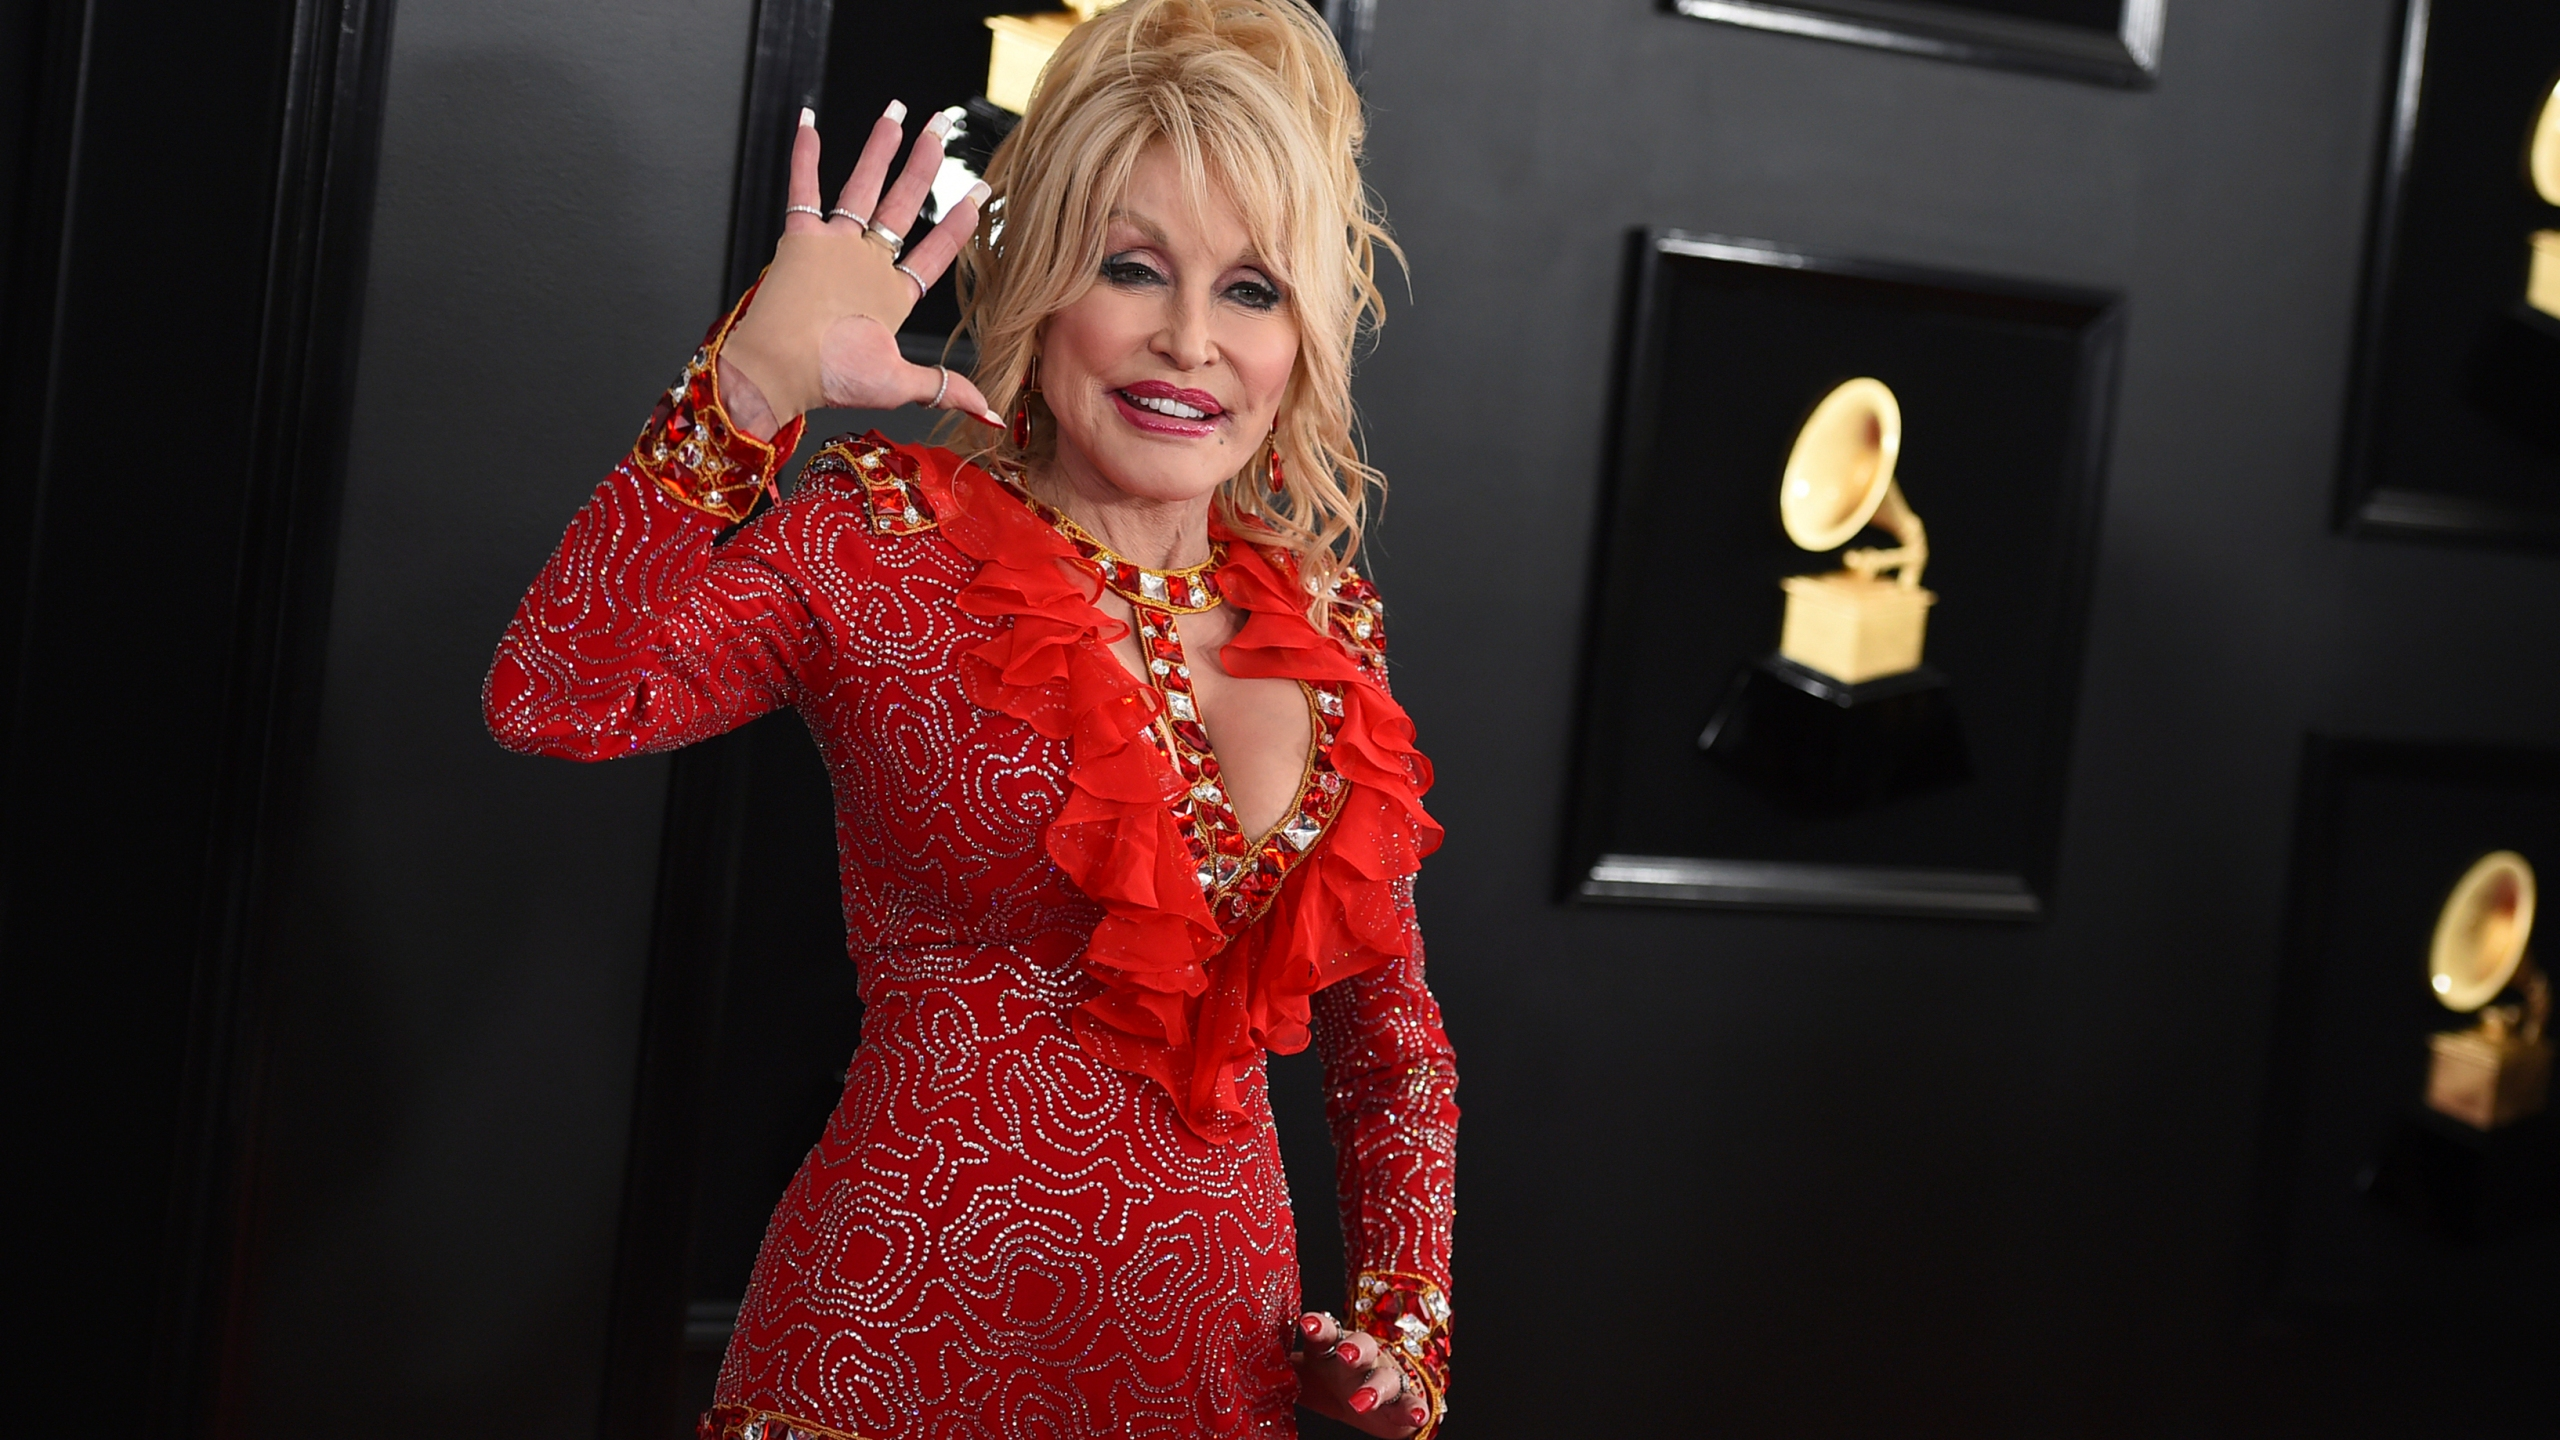 Dolly Parton arrives at the 61st annual Grammy Awards in Los Angeles on Feb. 10, 2019. (Jordan Strauss/Invision/Associated Press)